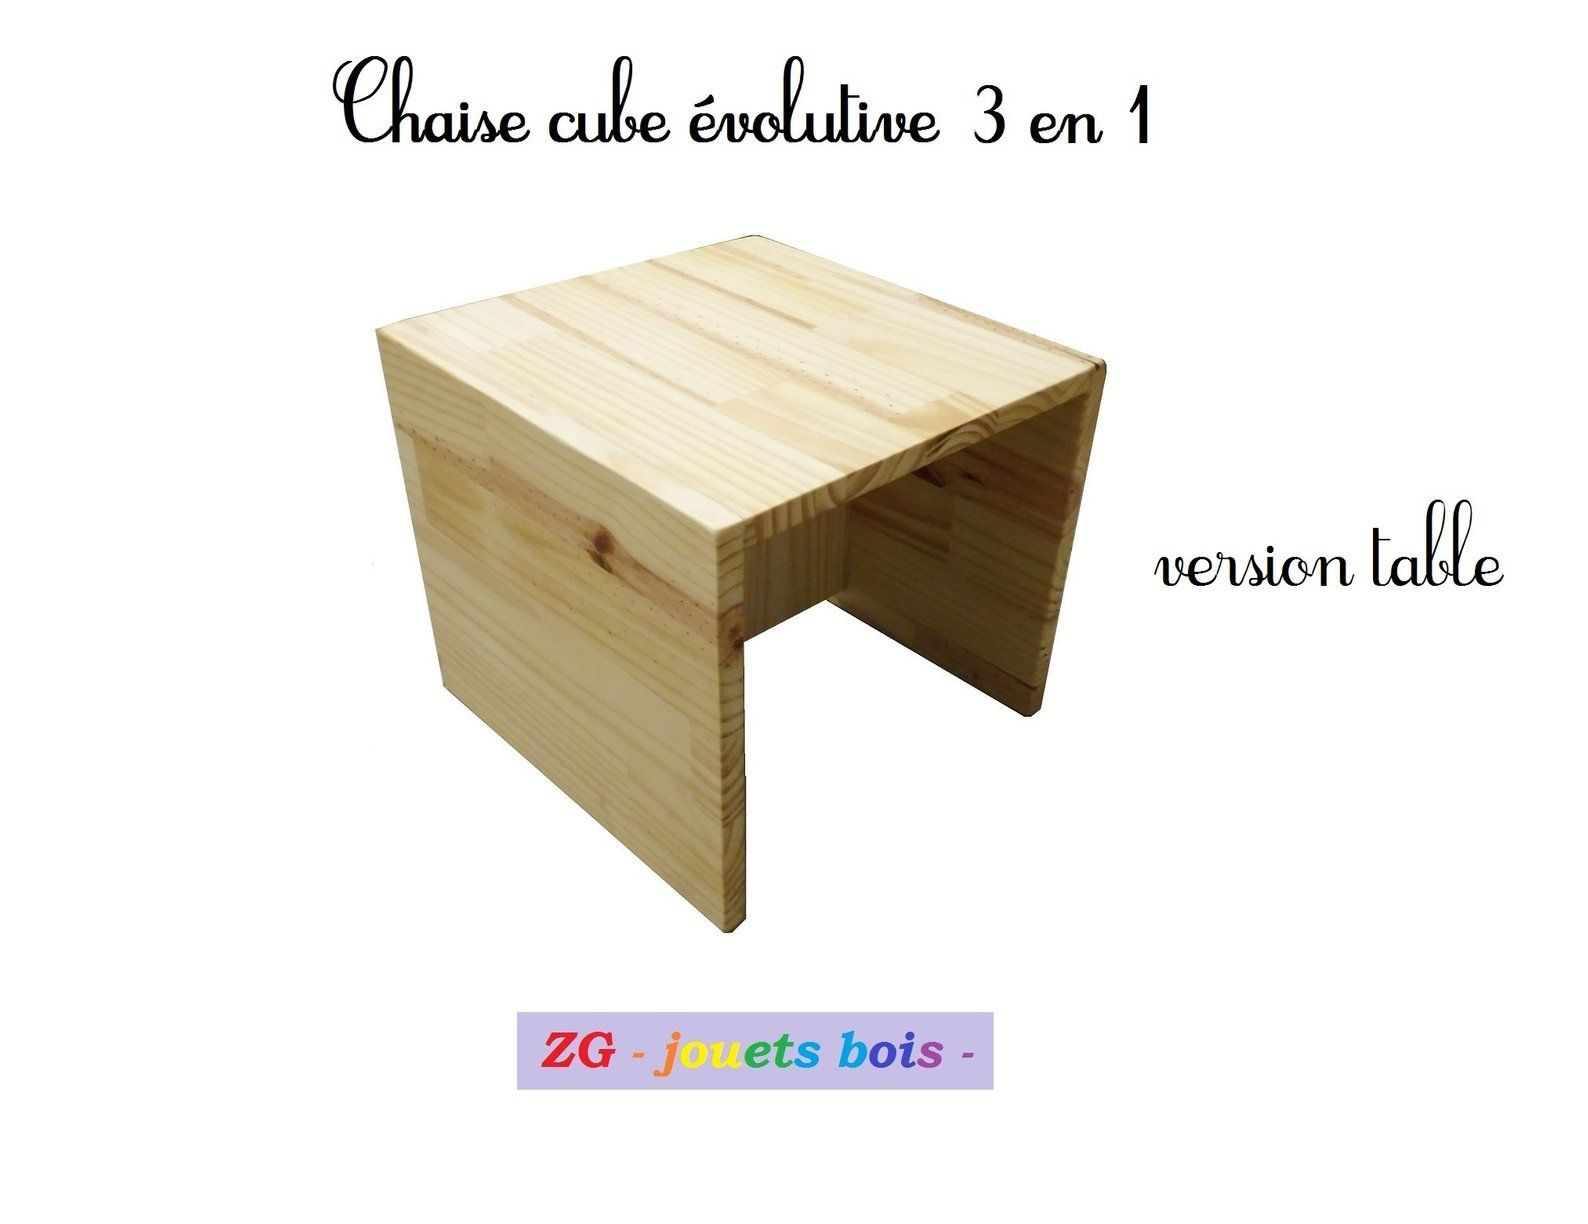 Chaise Cube Montessori Chaise En Bois Evolutive 3en 1 Deux Hauteurs D Assise Table D Appoint Mobilier Bebe Inscription Personnalisable Step Stool Decor Cube